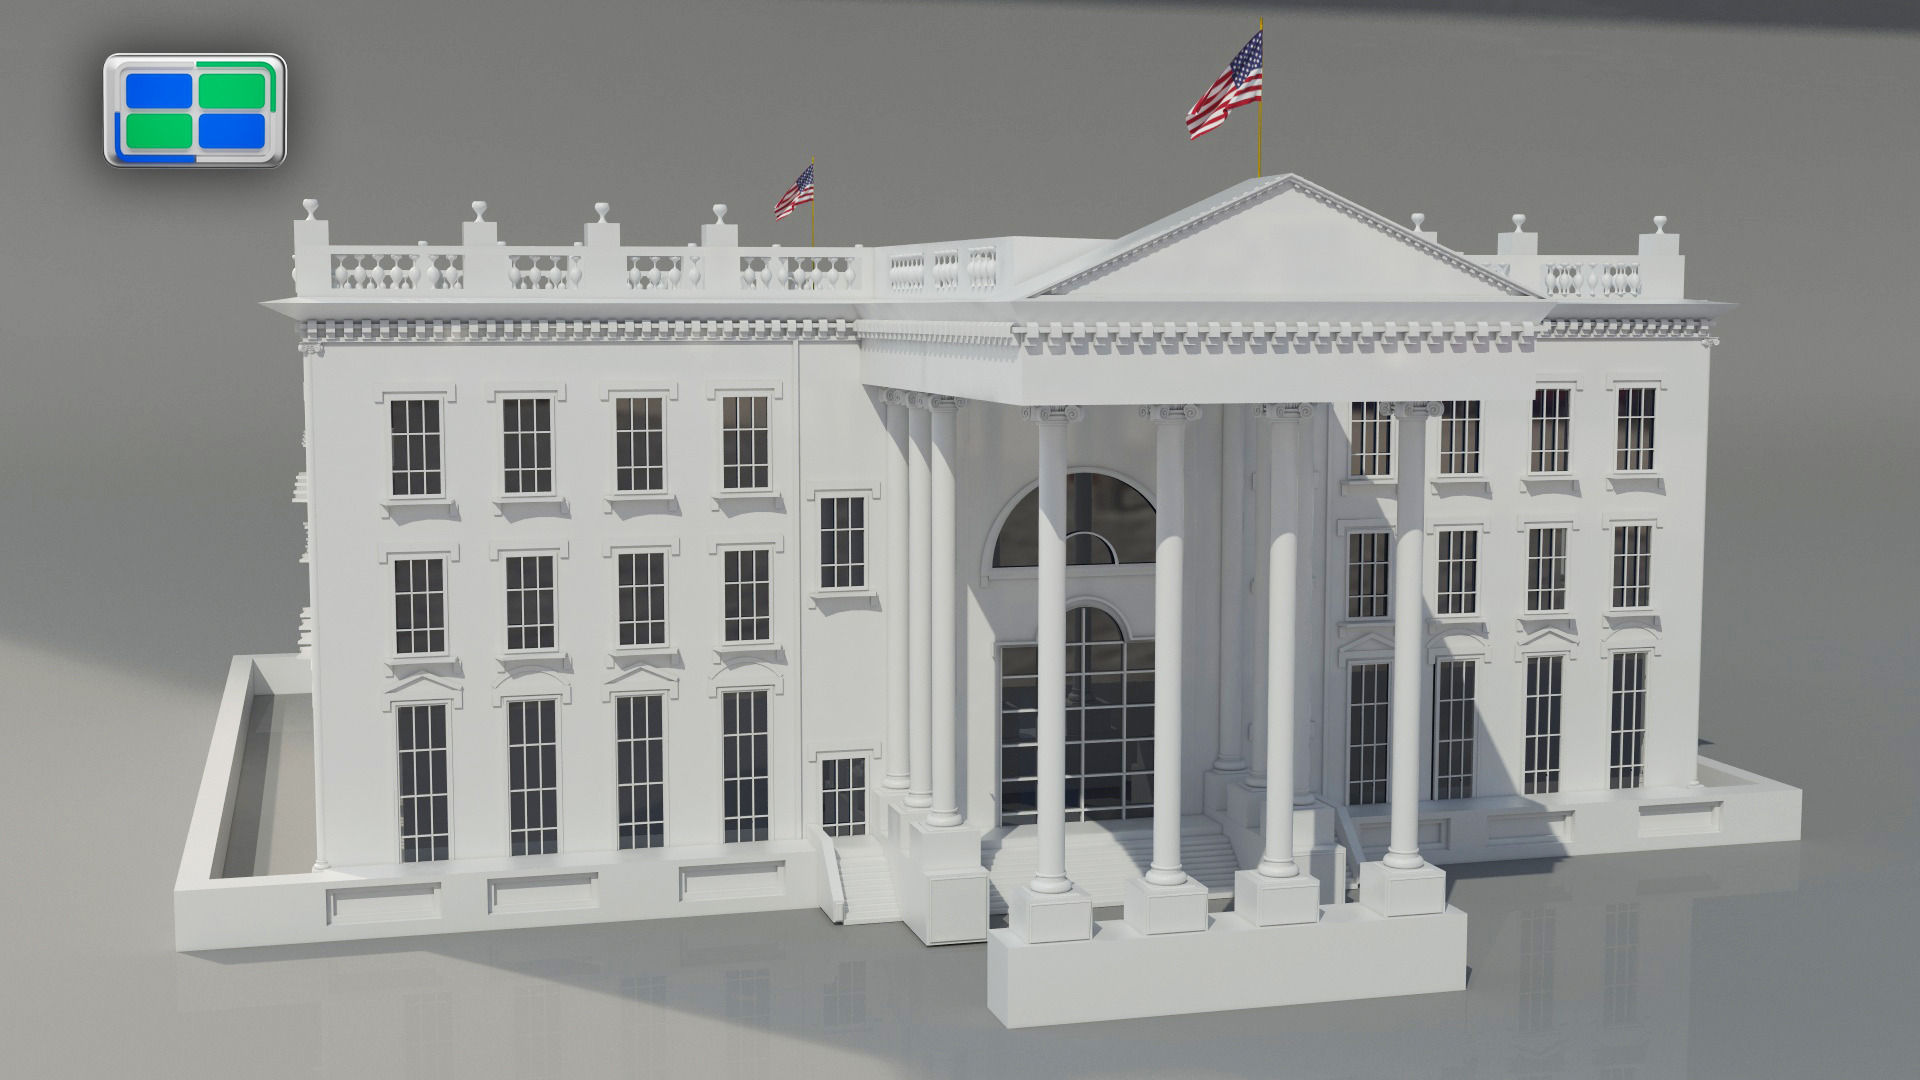 White house 3d model animated max - 3d printed house usa ...